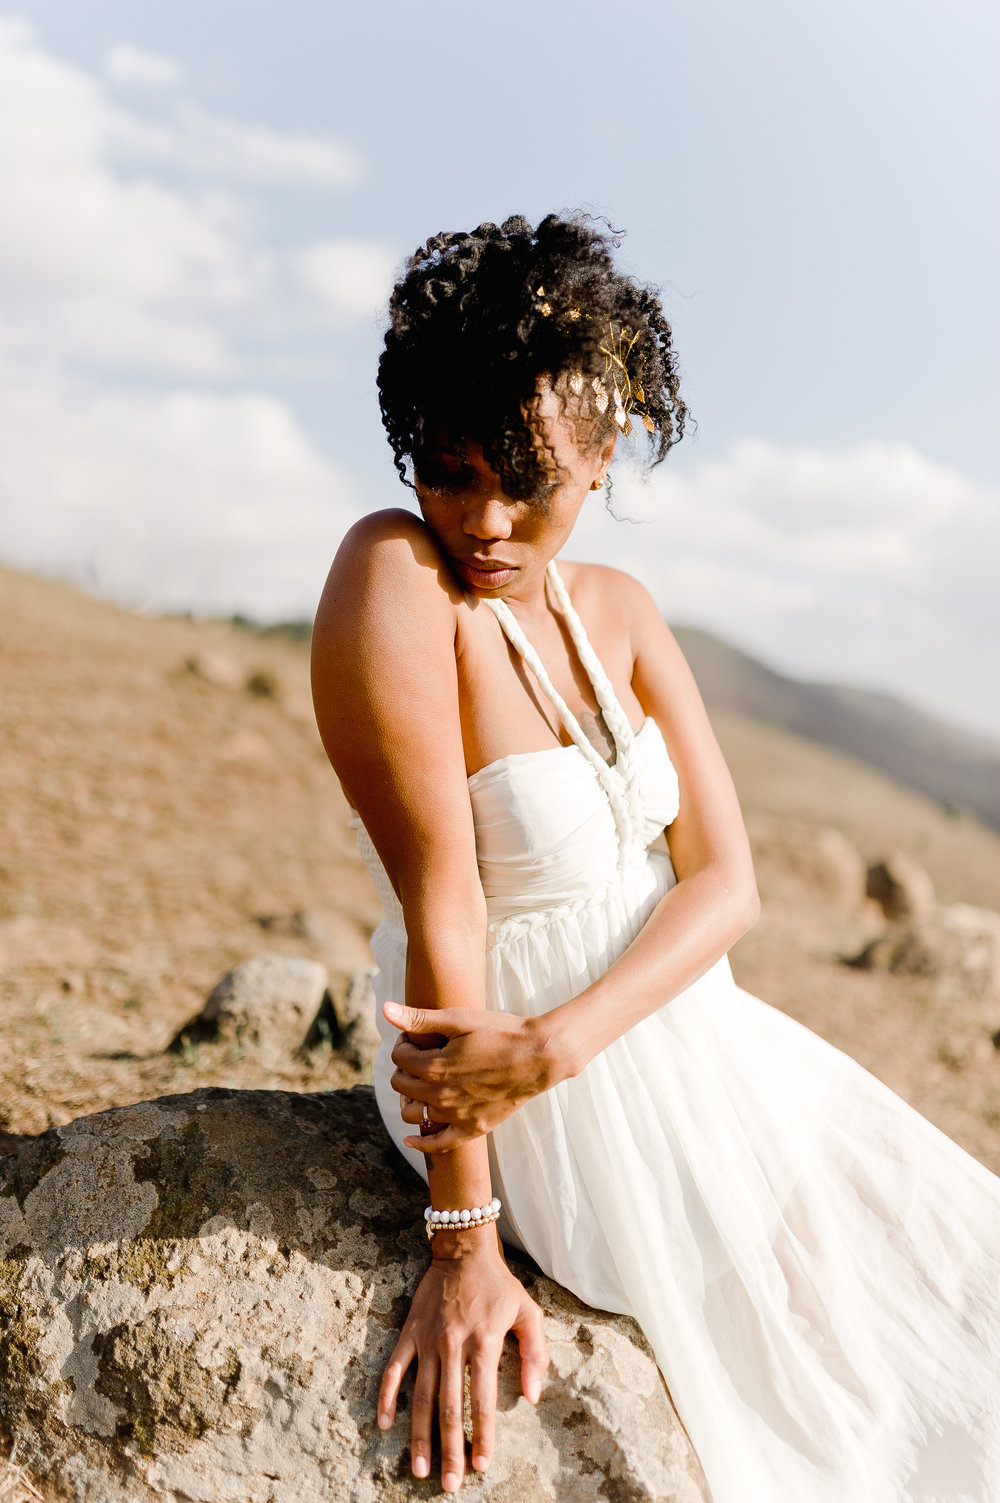 Anna-Hari-Photography-Kenyan-Wedding-Photographer-Ngong-Hills-Elopement-Kenya-33.jpg